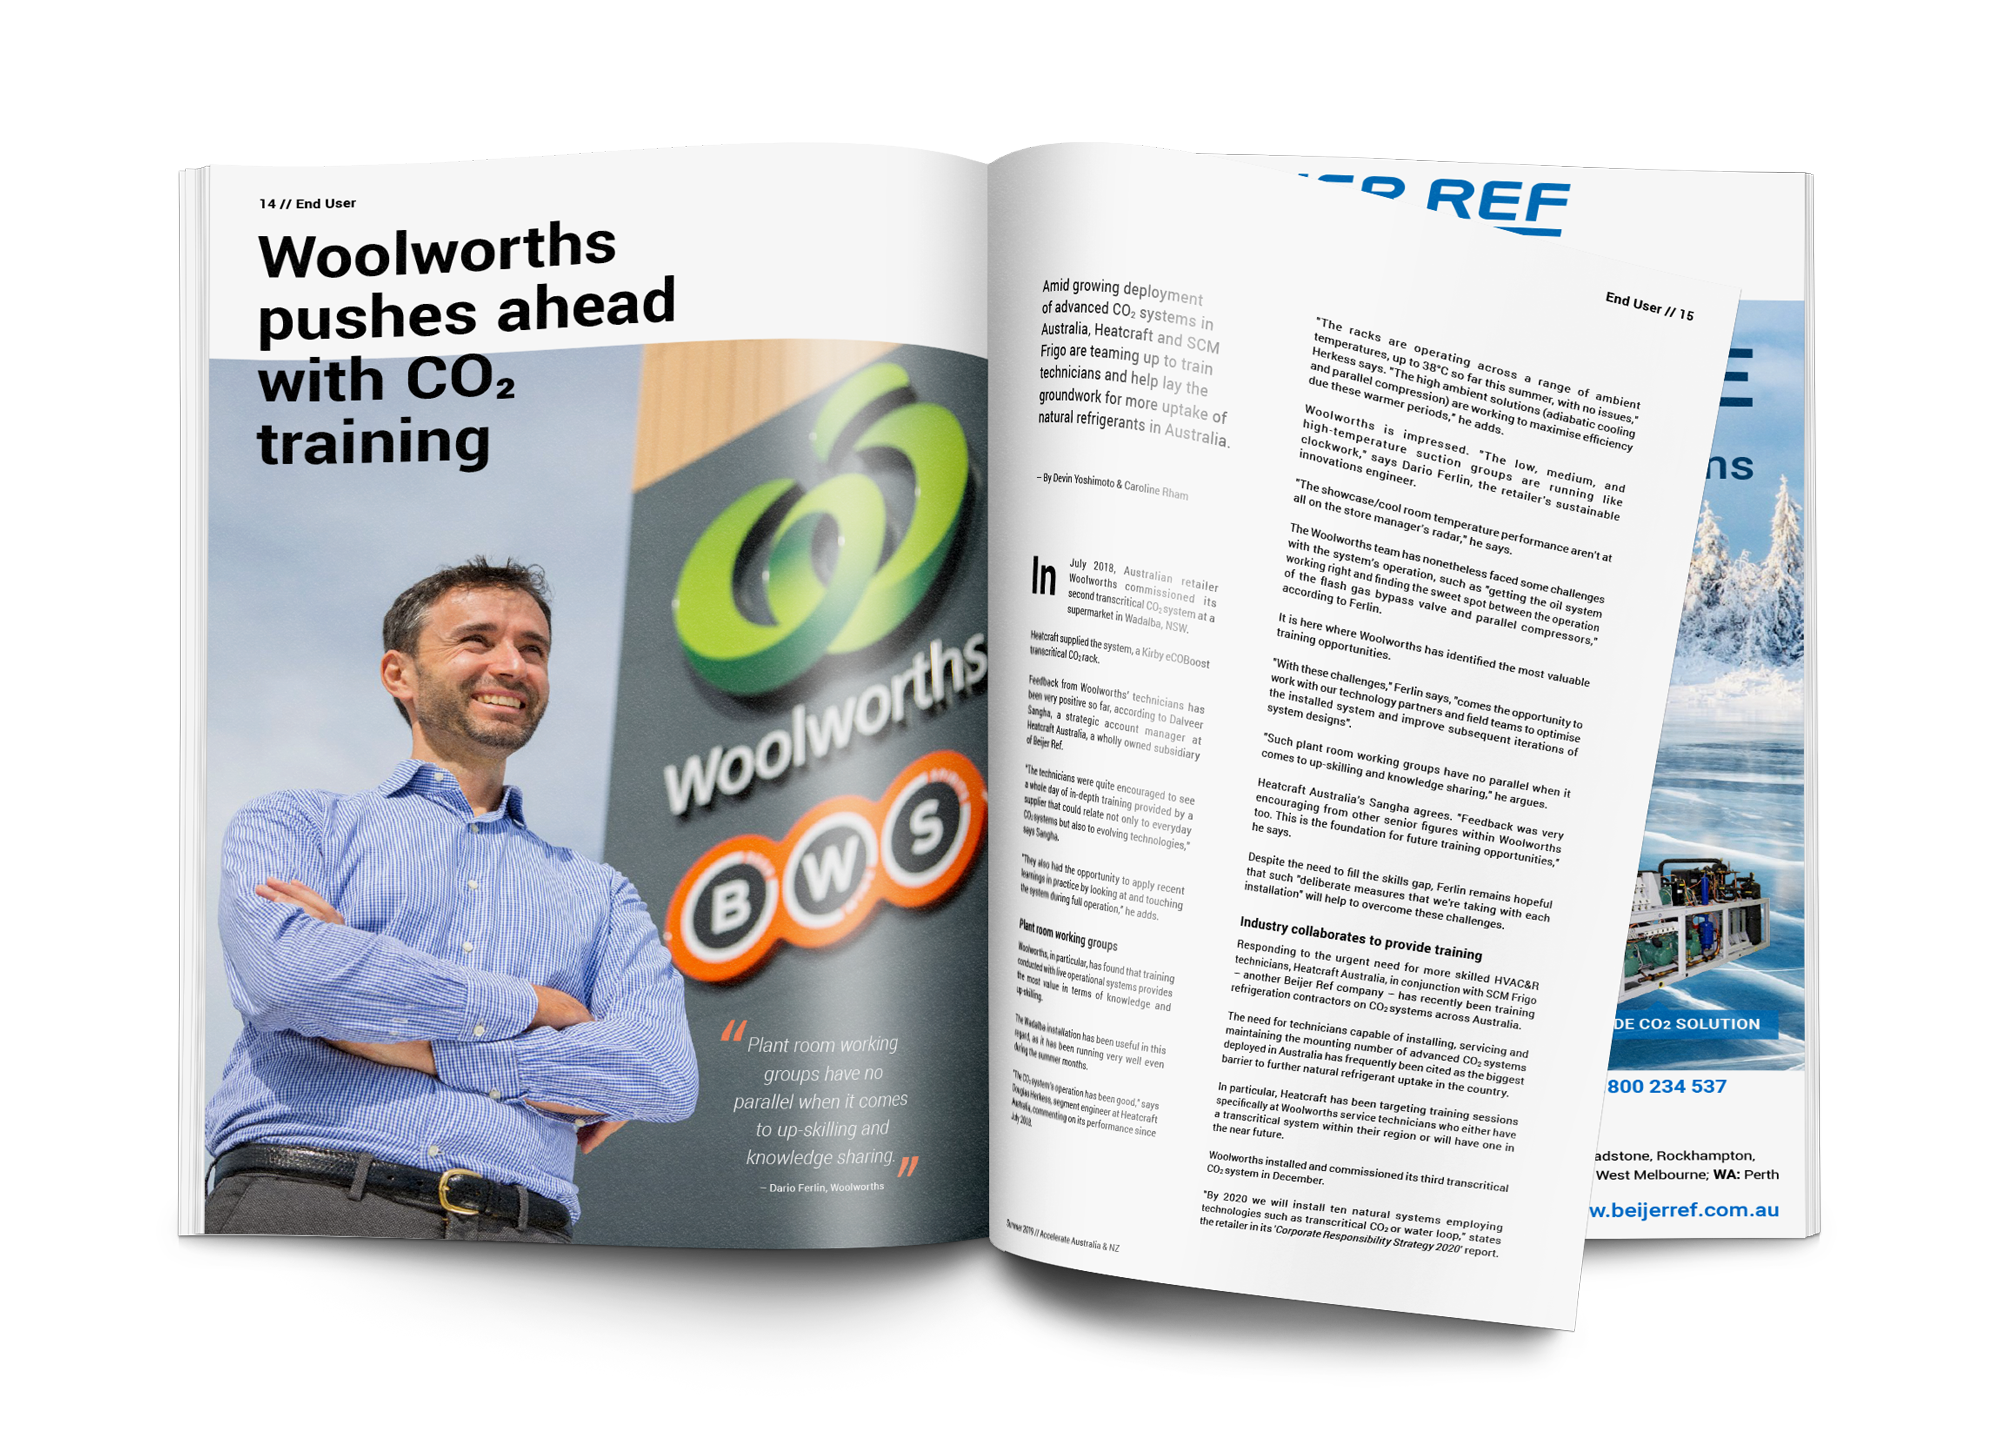 Woolworths pushes ahead with CO2 training